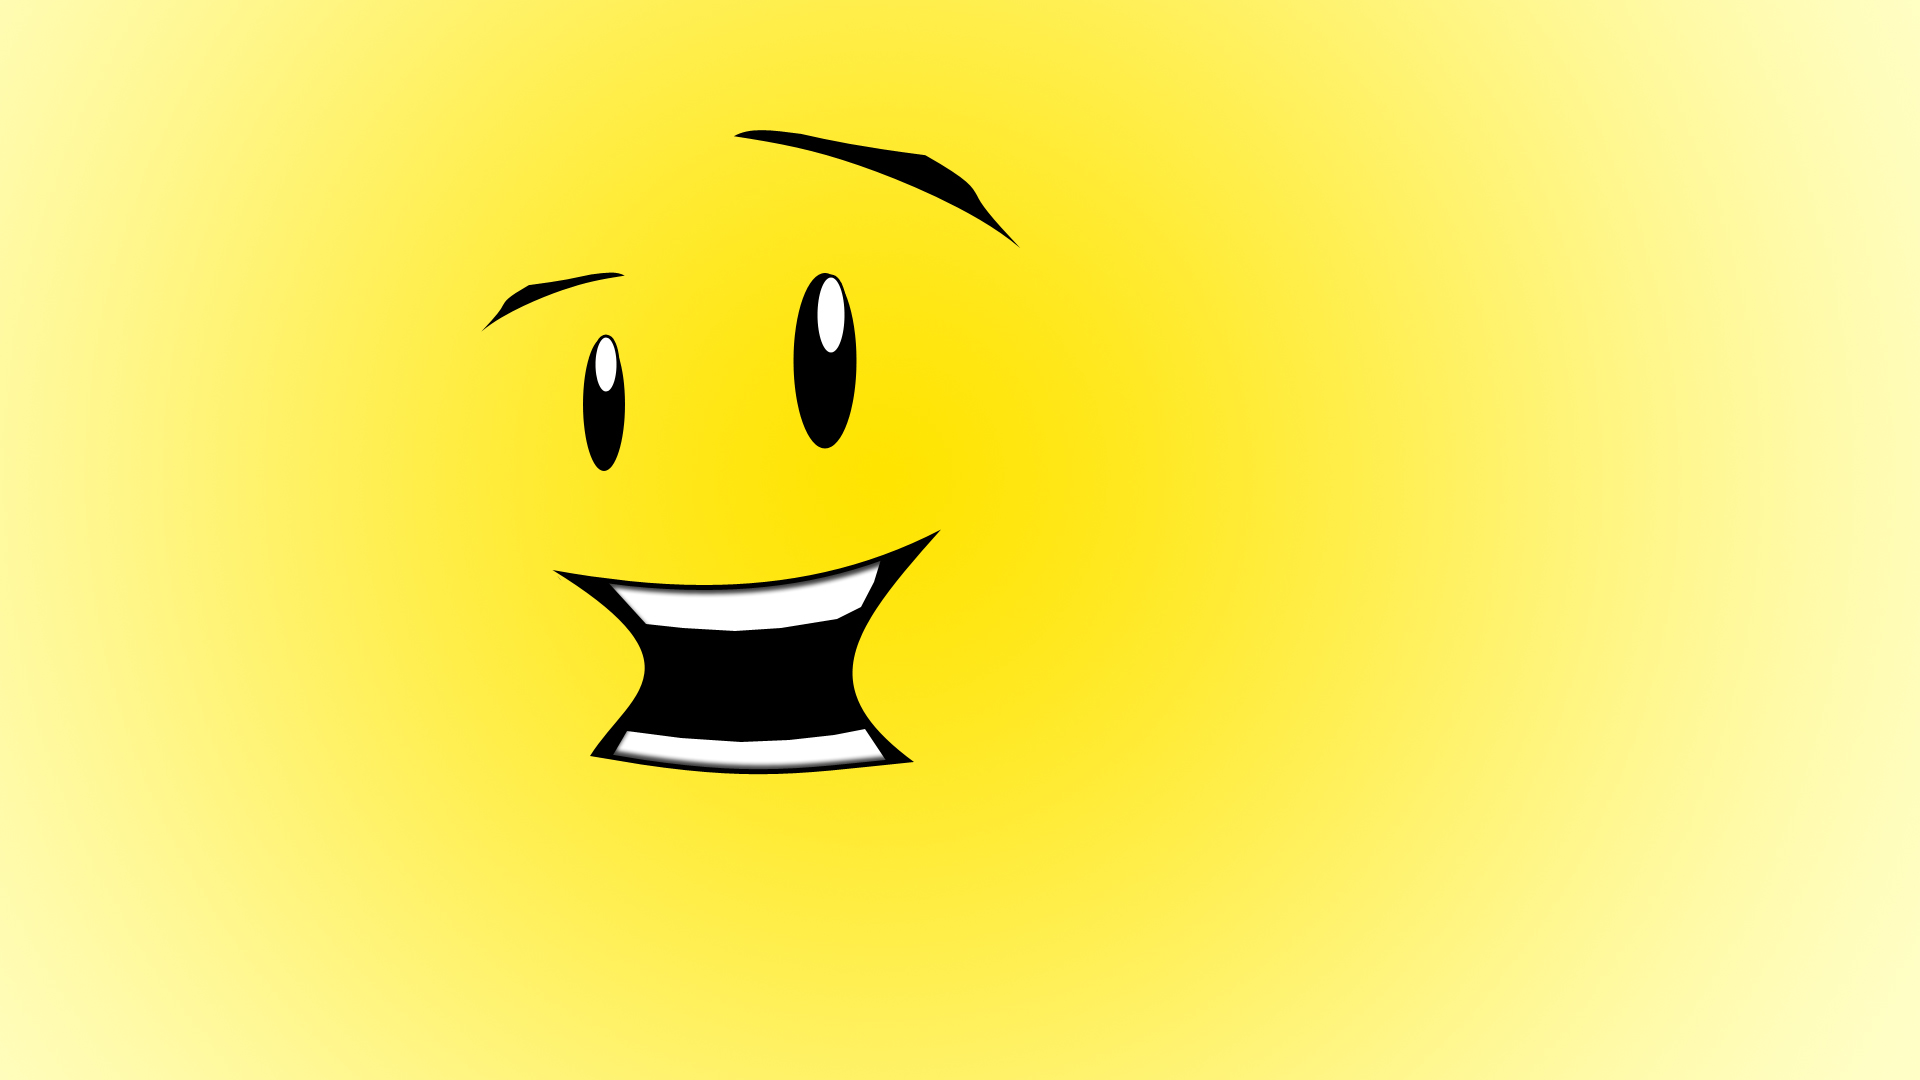 smiley face wallpaper 12332 1920x1080 px